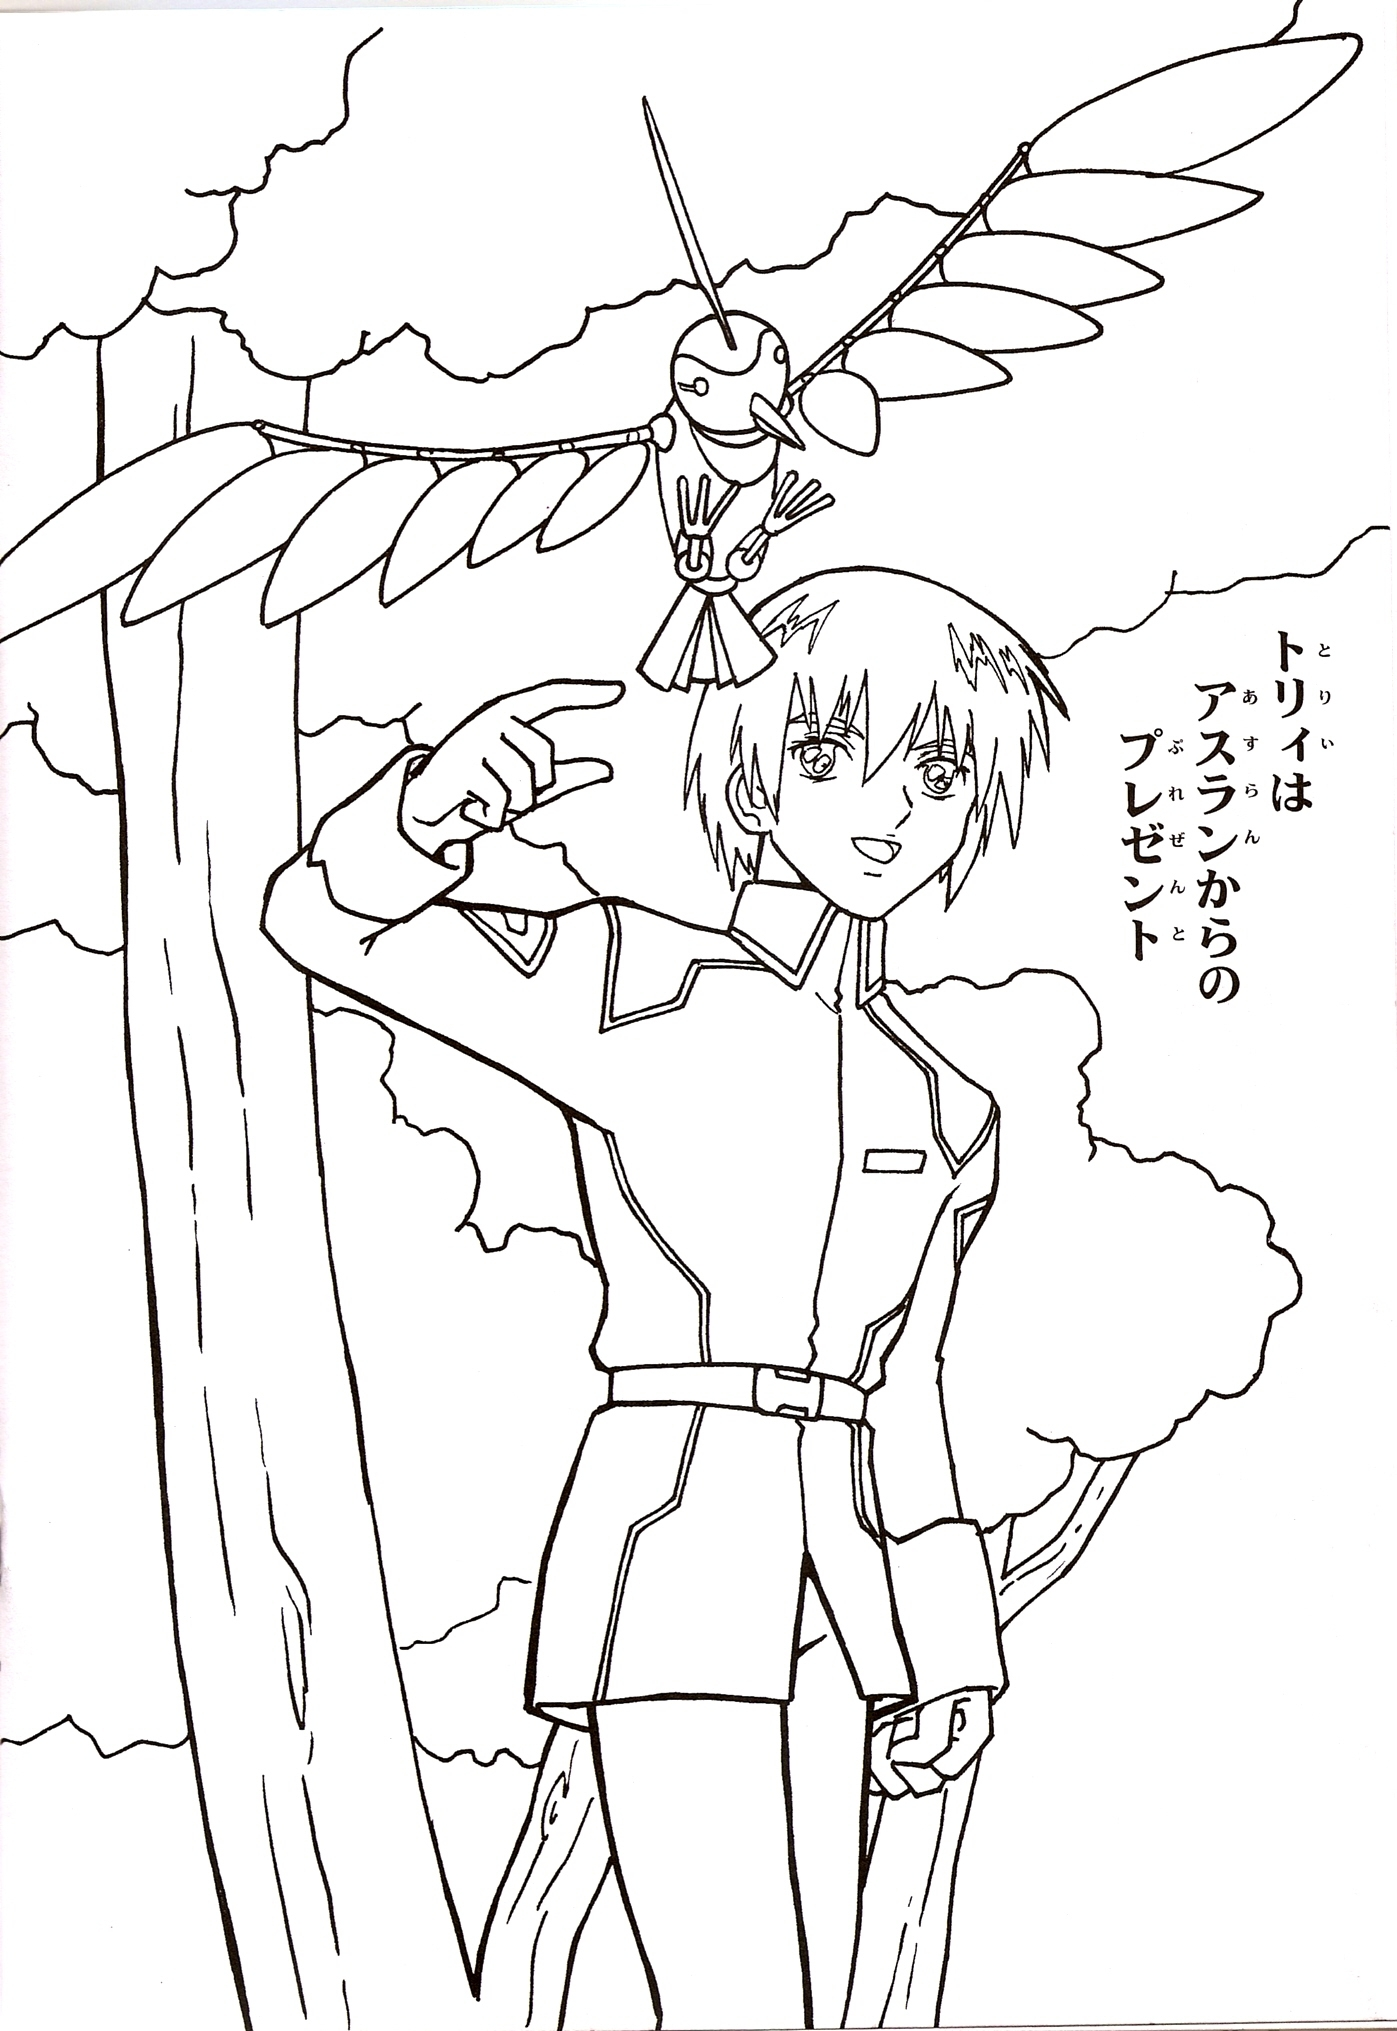 Gundam Force Coloring Pages Printable Coloring Pages